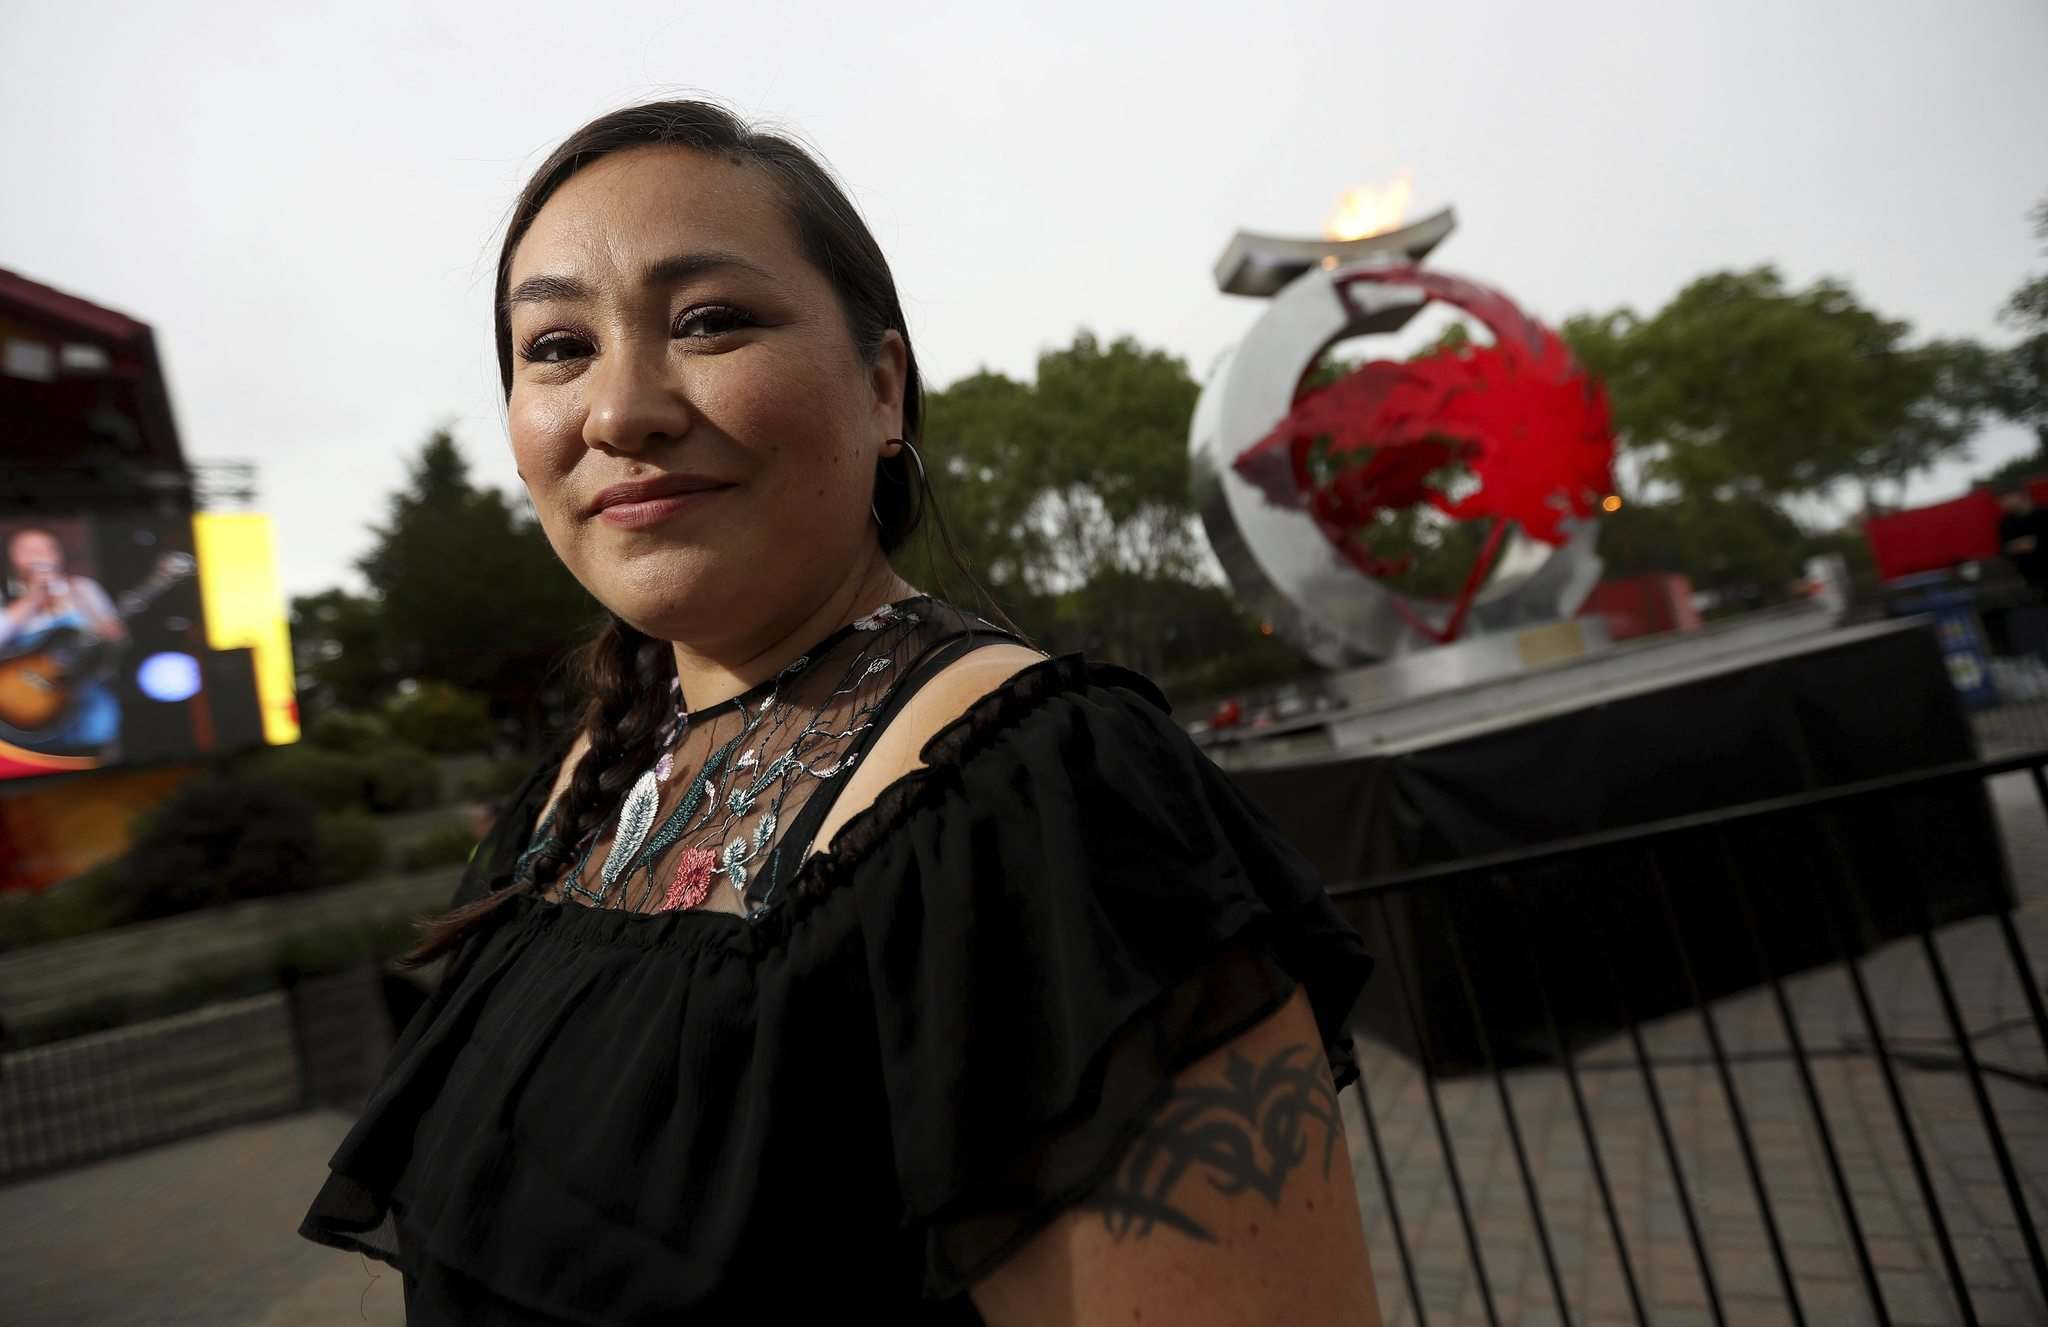 TREVOR HAGAN / WINNIPEG FREE PRESS</p><p>Diyet, a performer from the Yukon, at The Forks on Northern Territories night on Wednesday.</p>